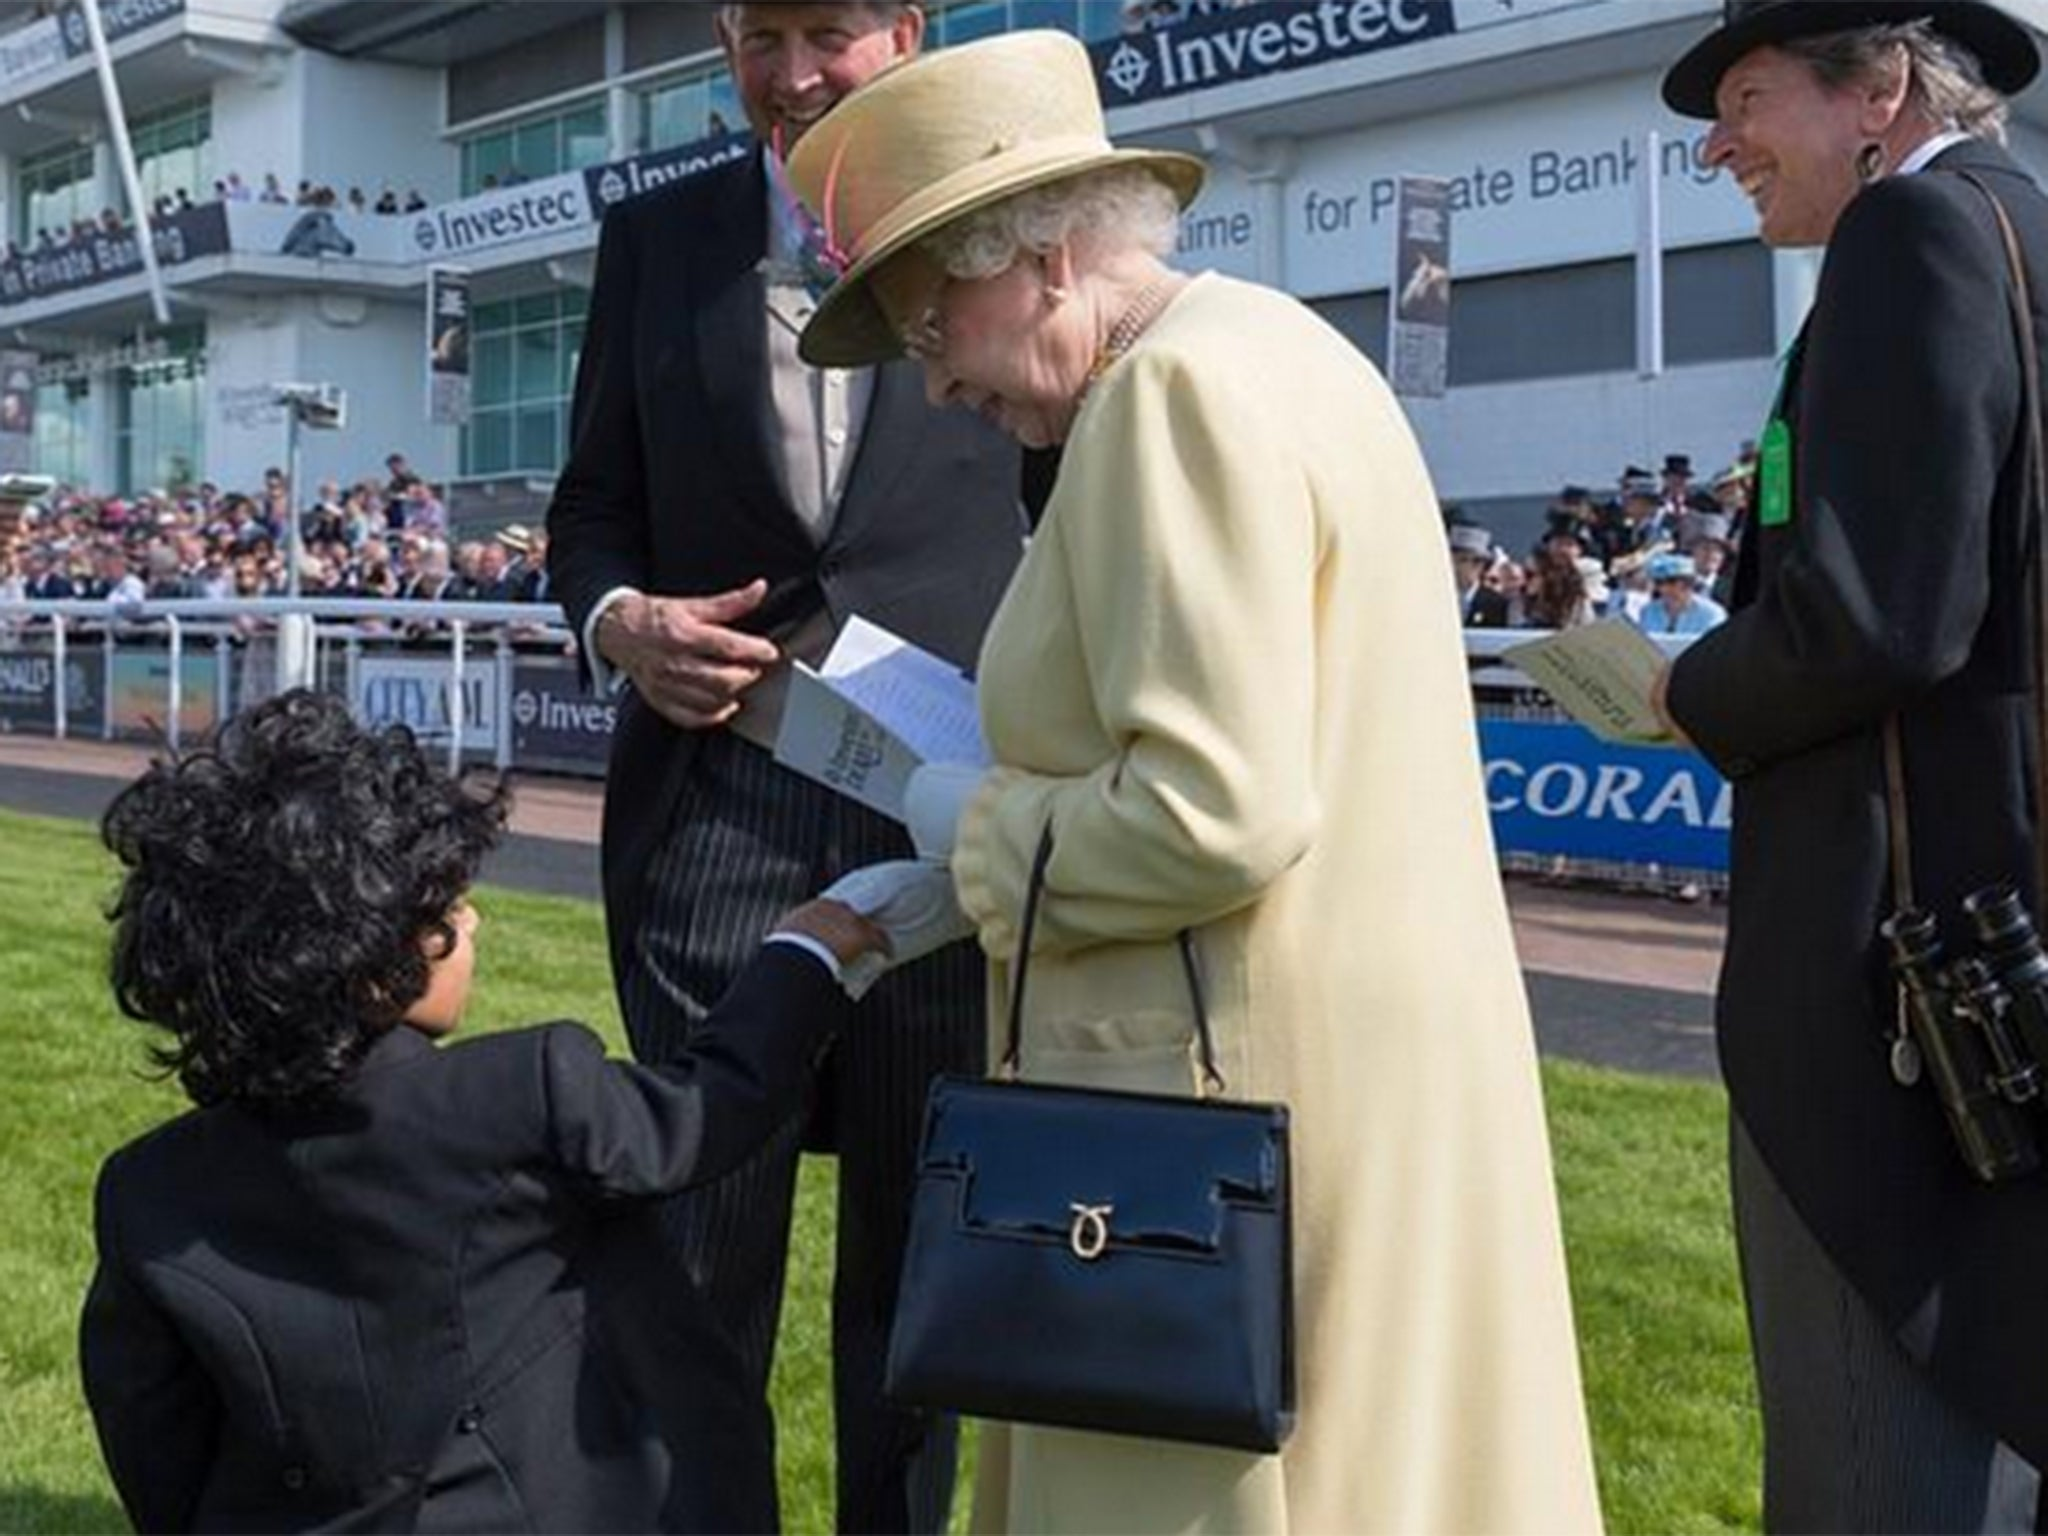 Young boy masters Royal etiquette by taking off his top hat to shake the Queen's hand